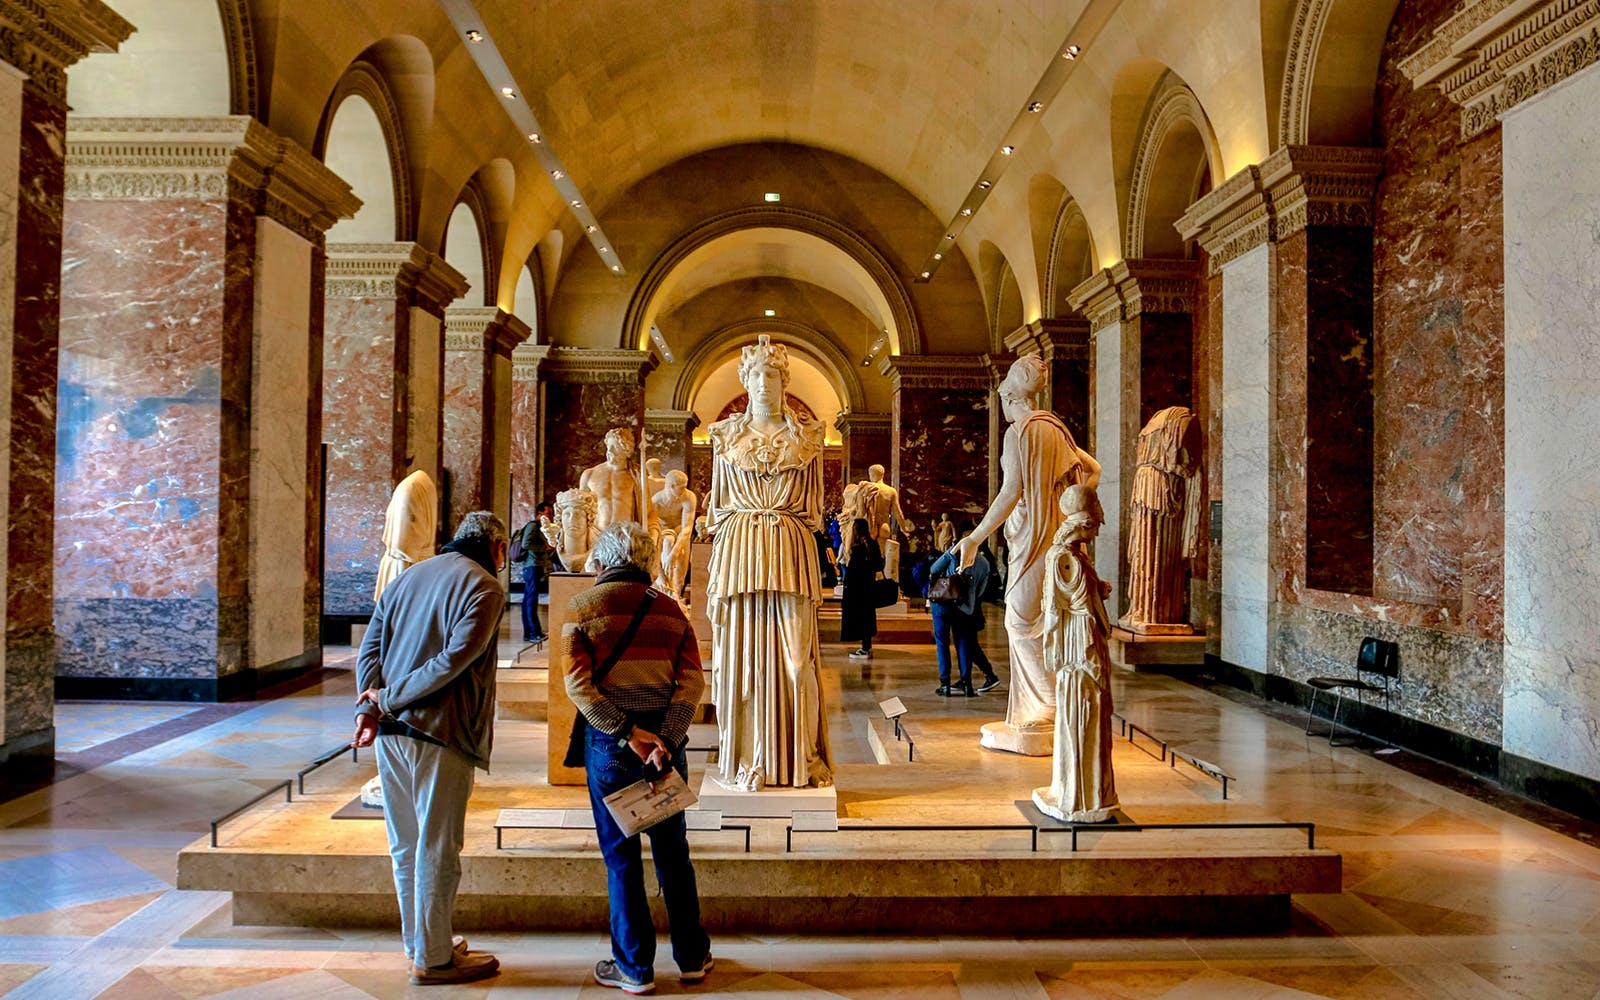 extended louvre masterpieces & royal palace group tour-3